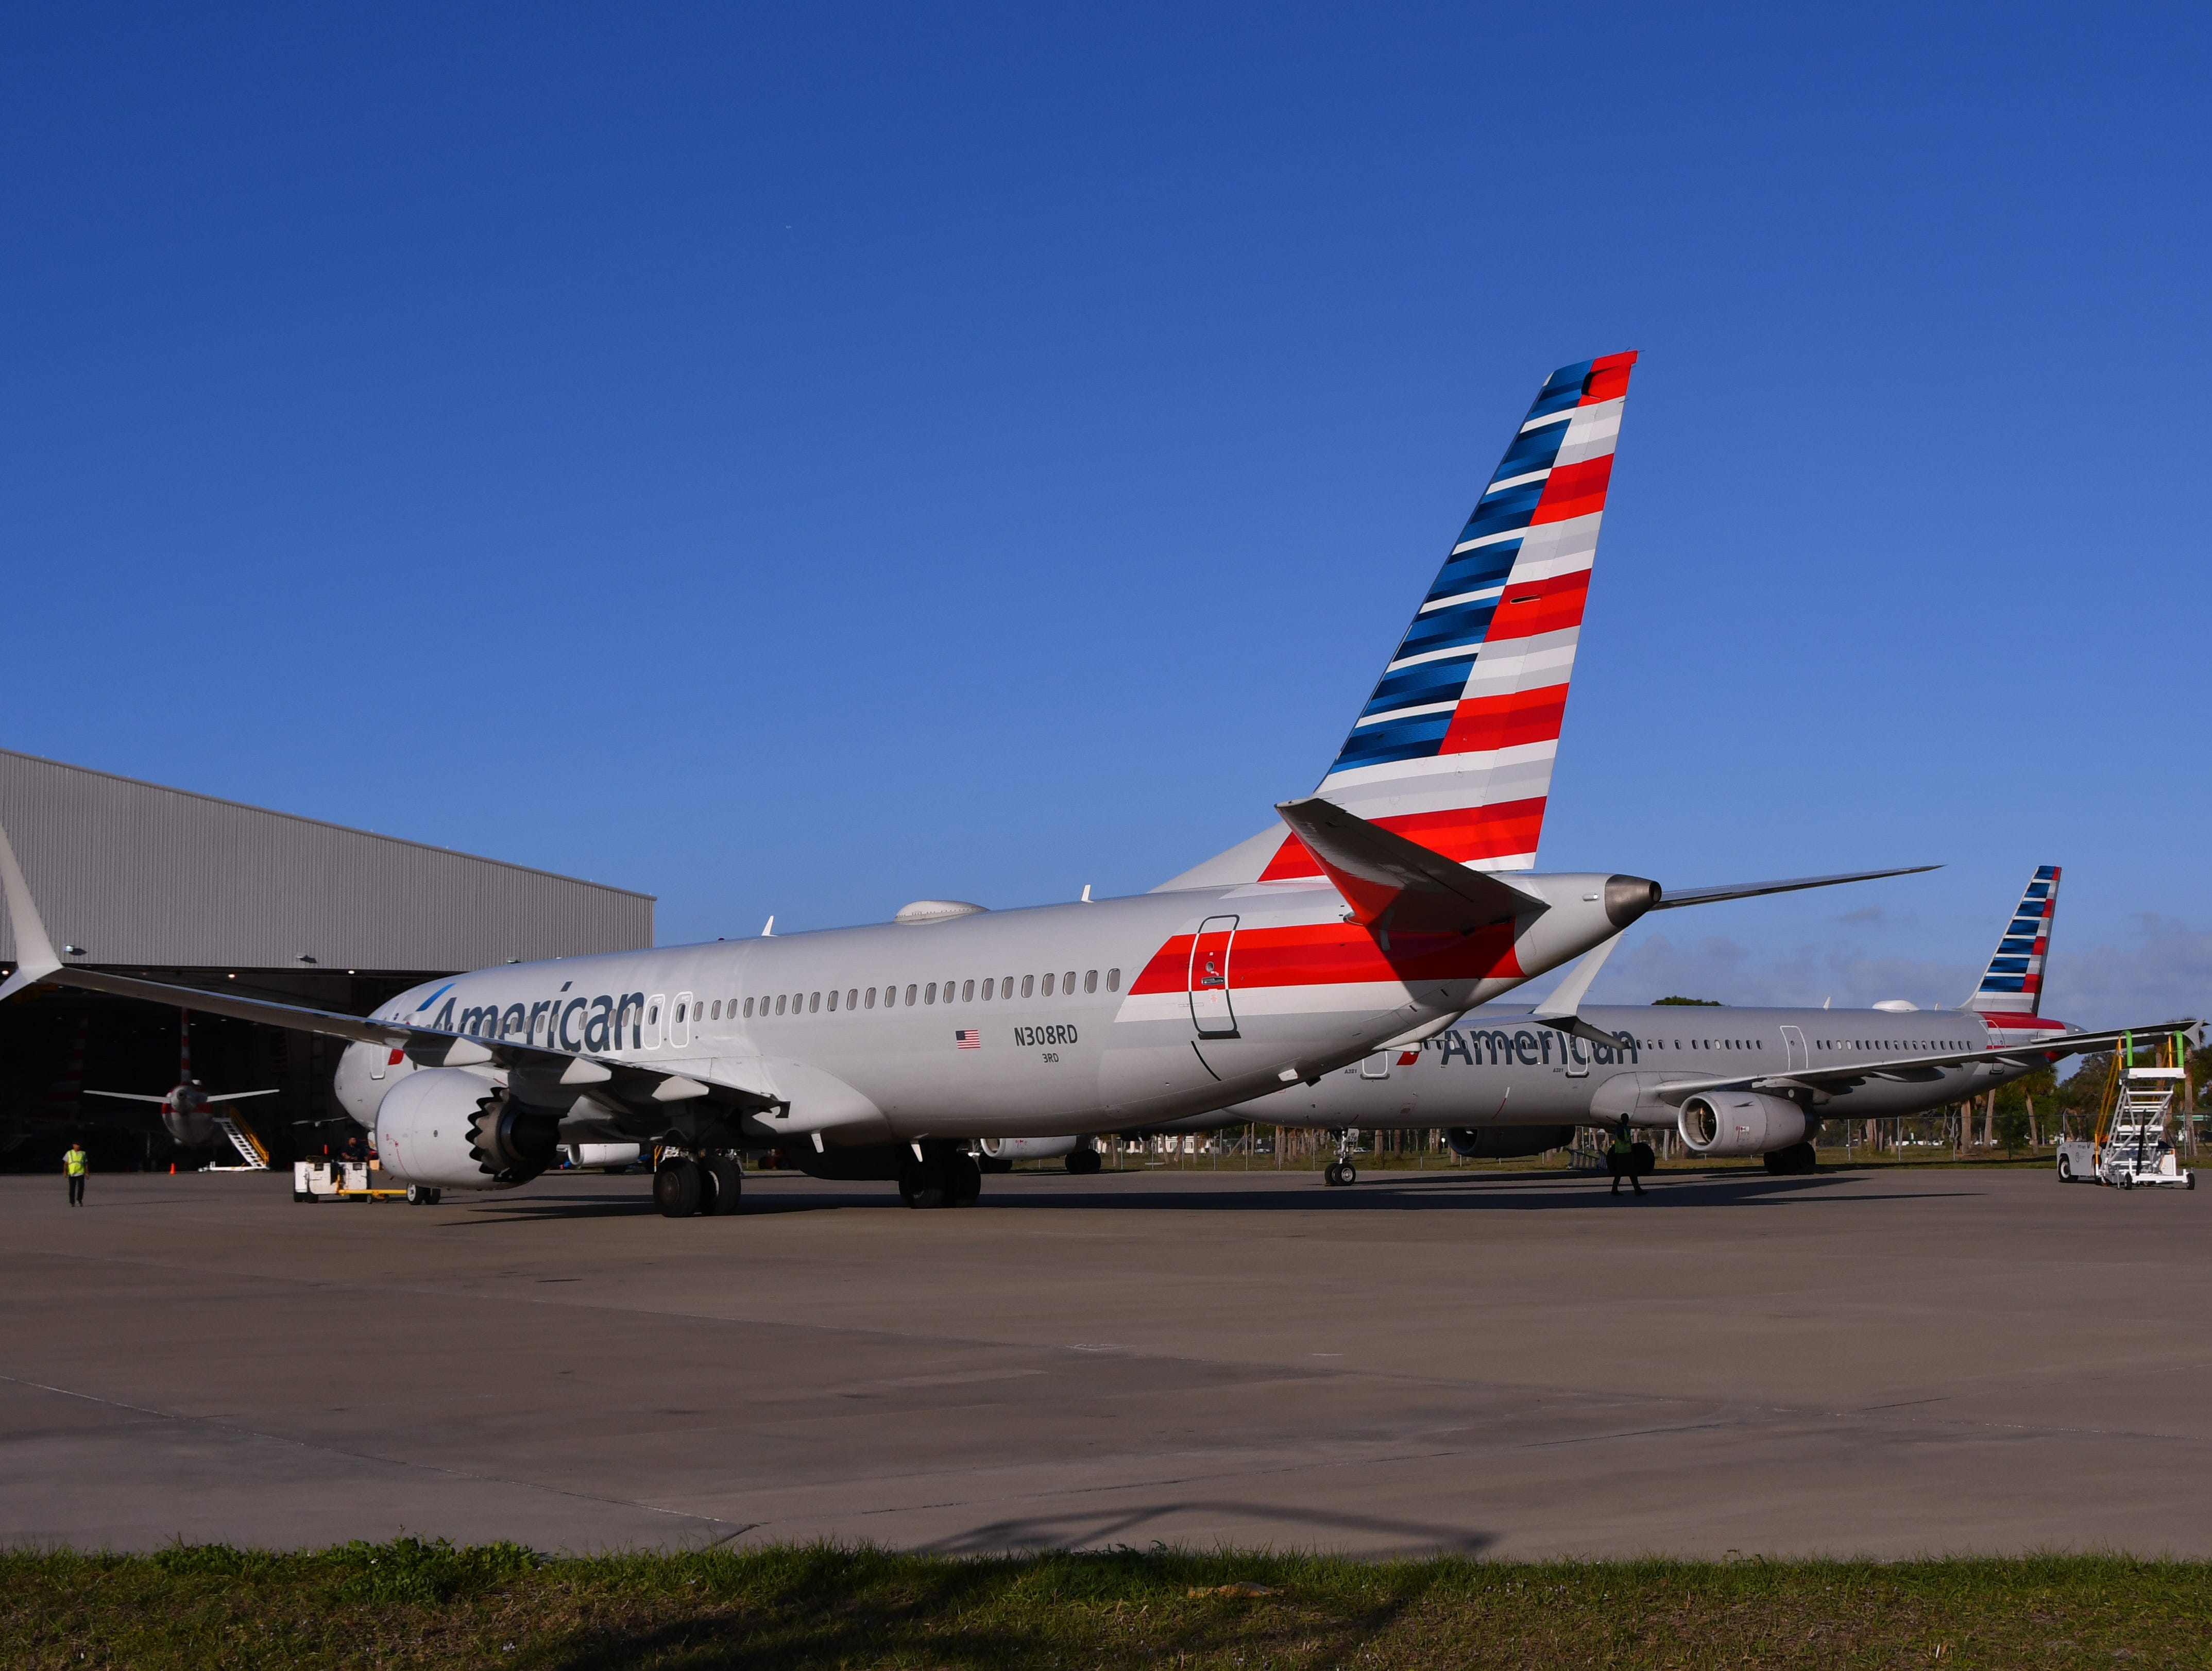 Orlando Melbourne International Airport will be housing some of the Boeing 737 Max 8 aircraft, which have been grounded around the world after two major accidents involving similar aircraft.Two had arrived by Two Thursday evening.